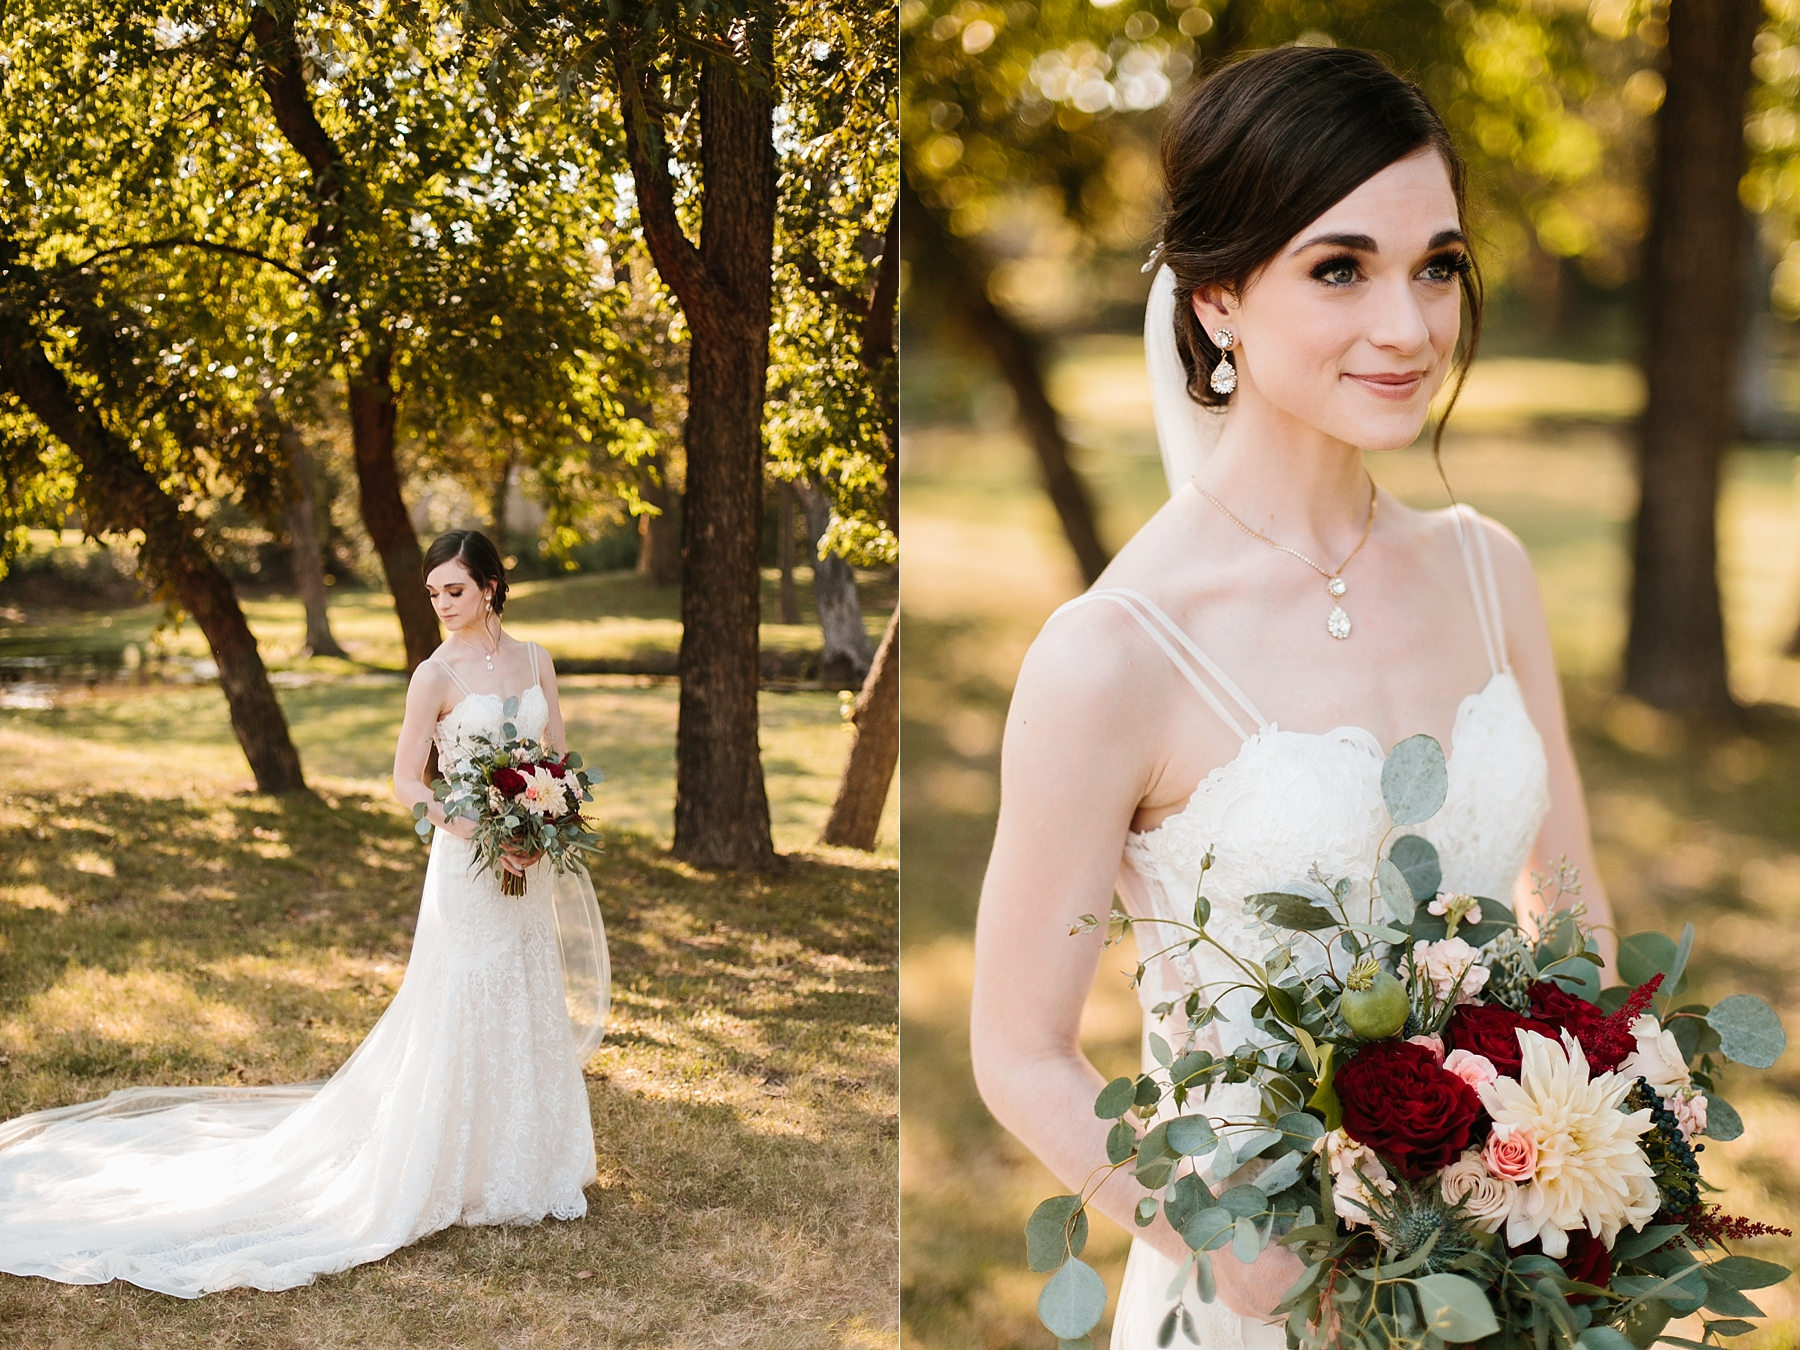 Emily + Caleb _ an elegant, intentional, industrial style wedding with navy + gold accents at 6500 in Dallas, TX by North Texas Wedding Photographer Rachel Meagan Photography _ 061